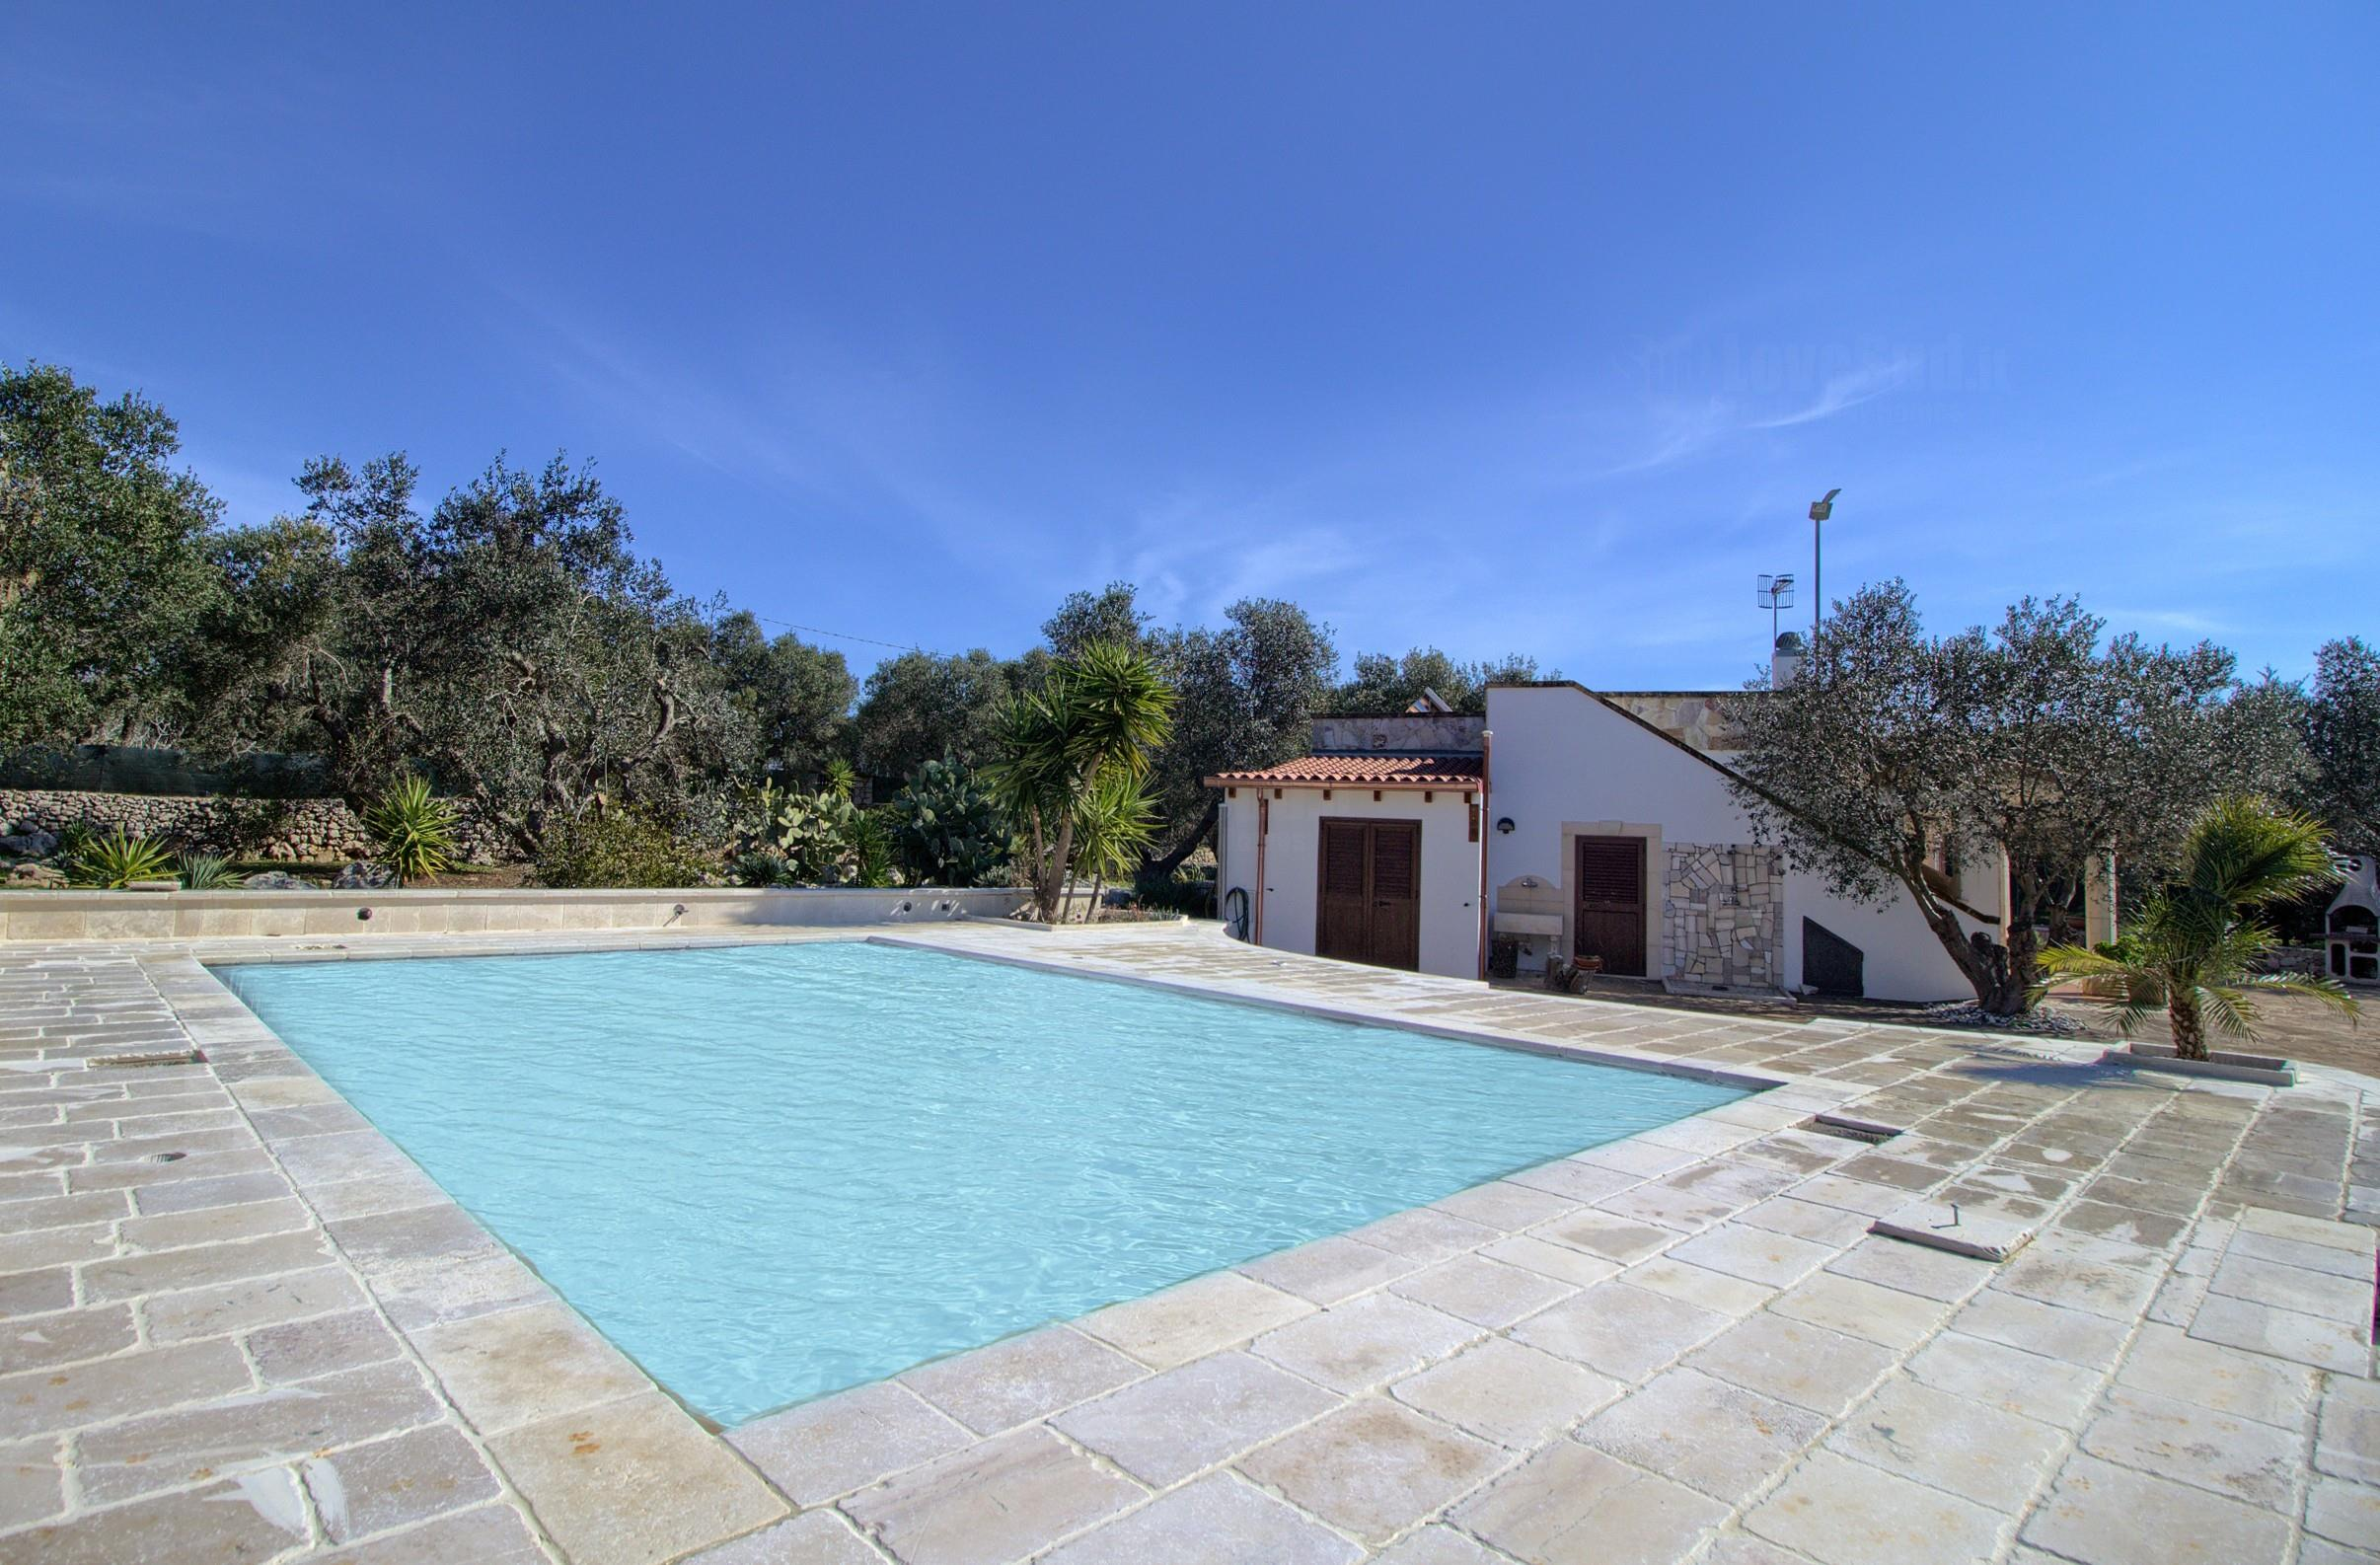 Apartment Cavaliere lovely pool home photo 25761935